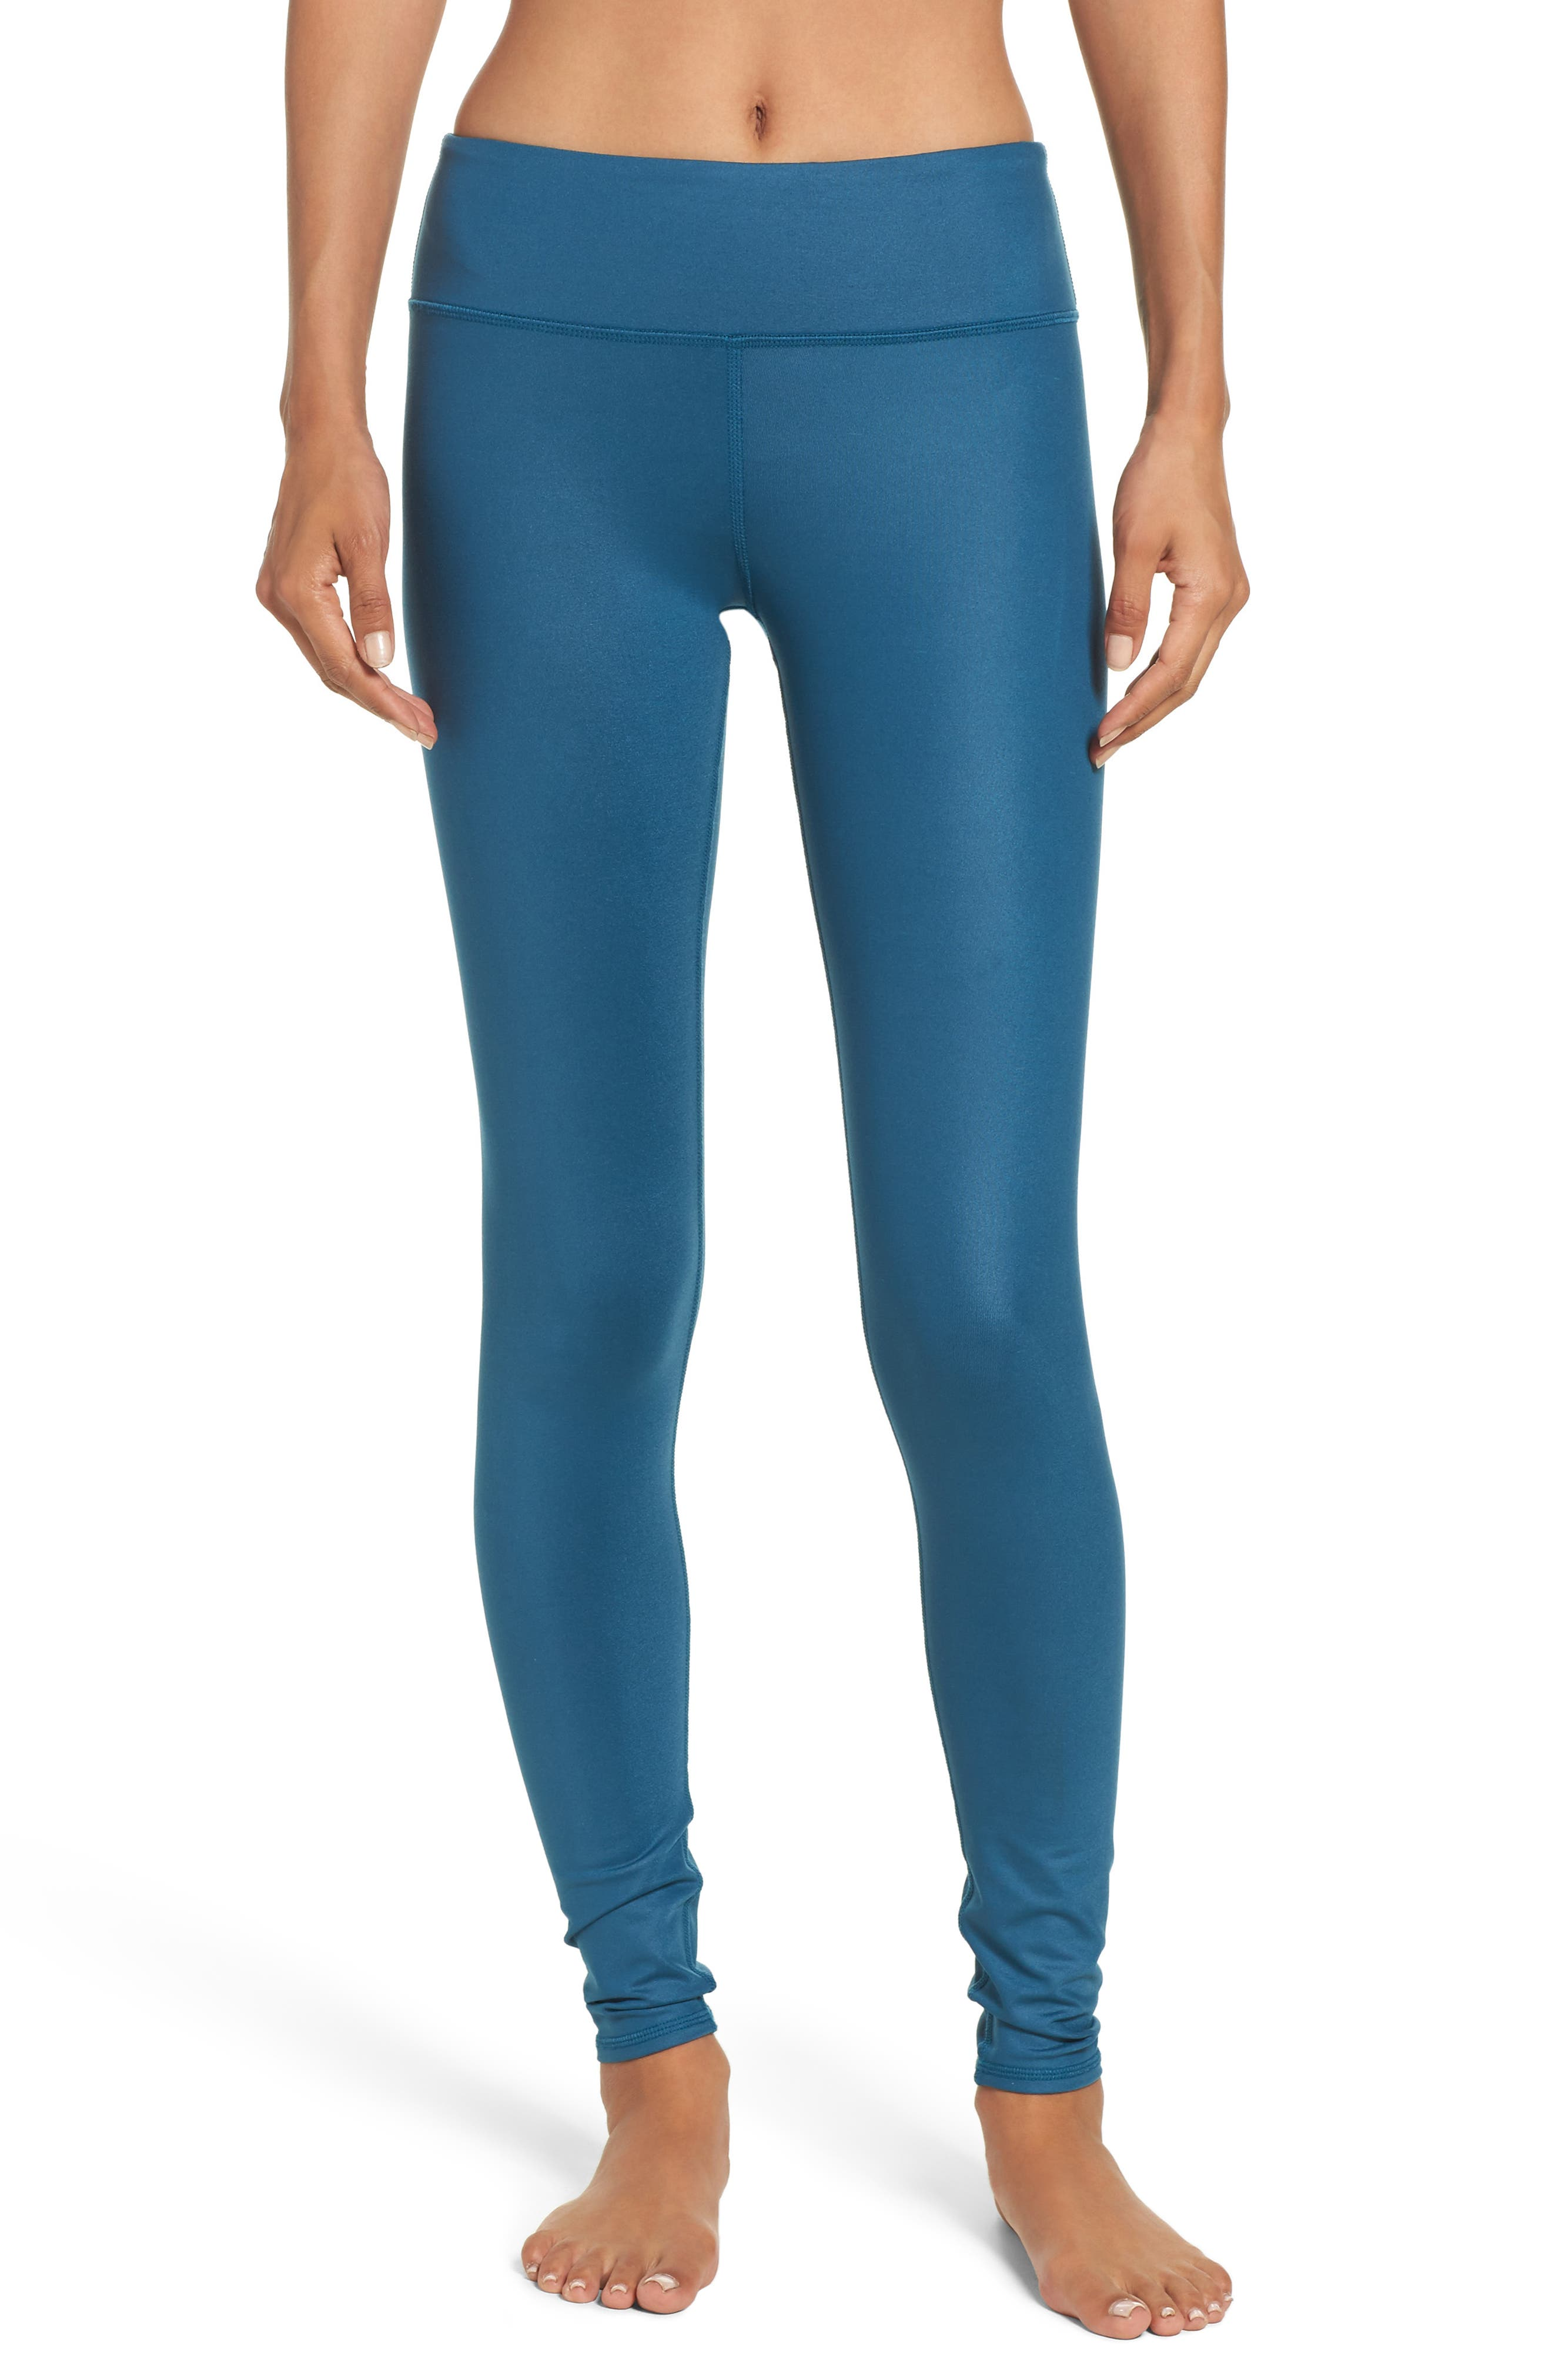 Alo Airbrushed Glossy Leggings